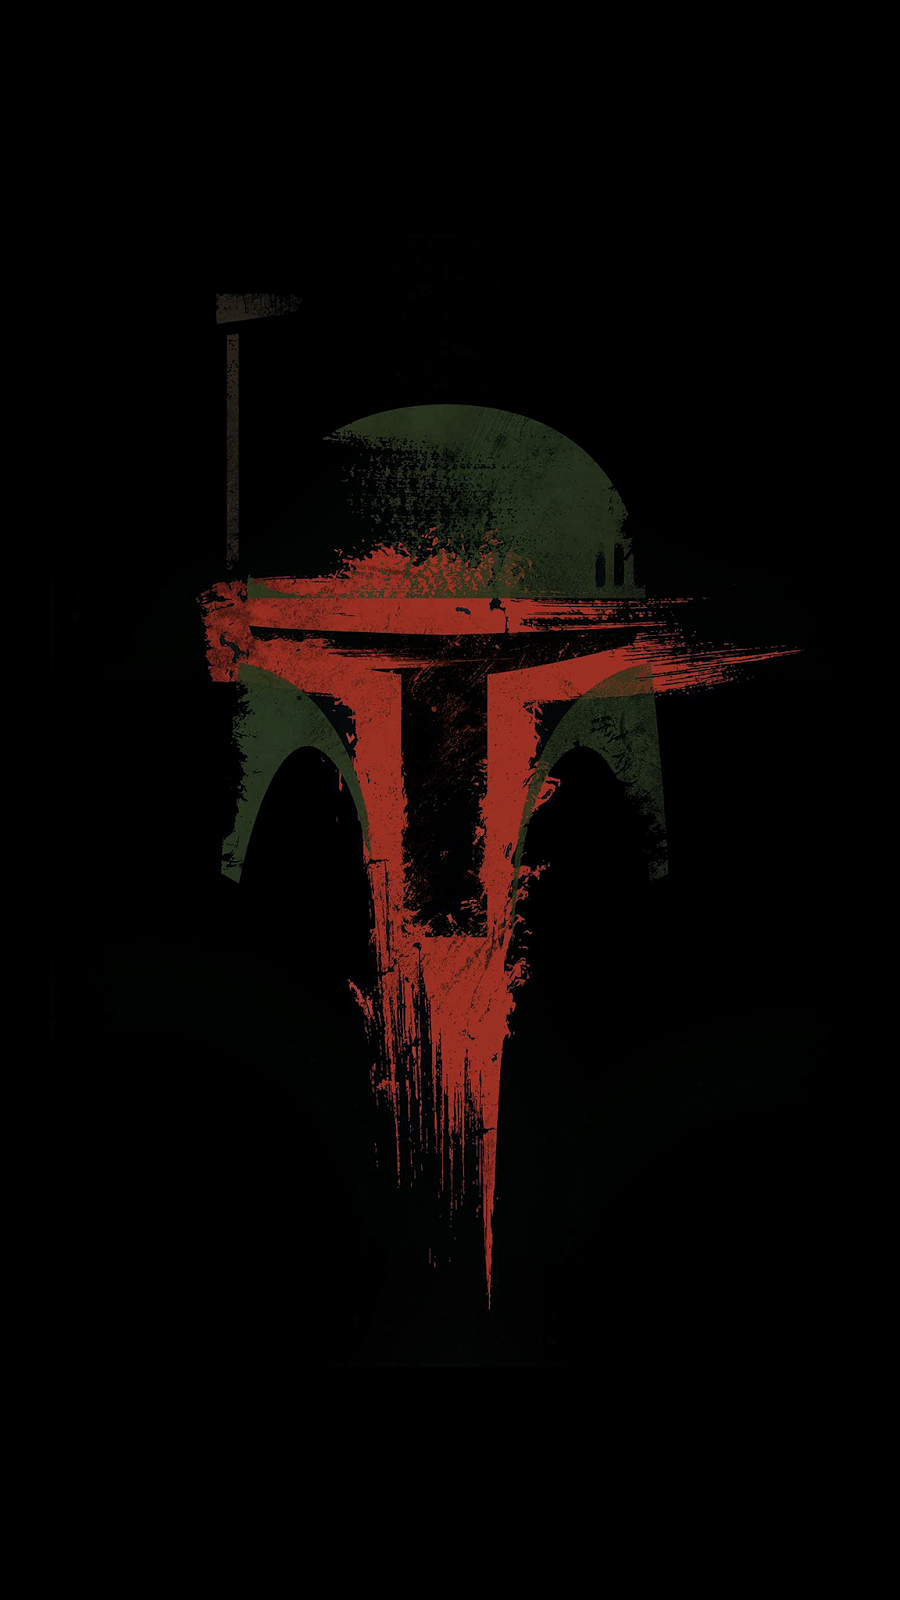 The Mandalorian phone wallpapers (With images) Star wars